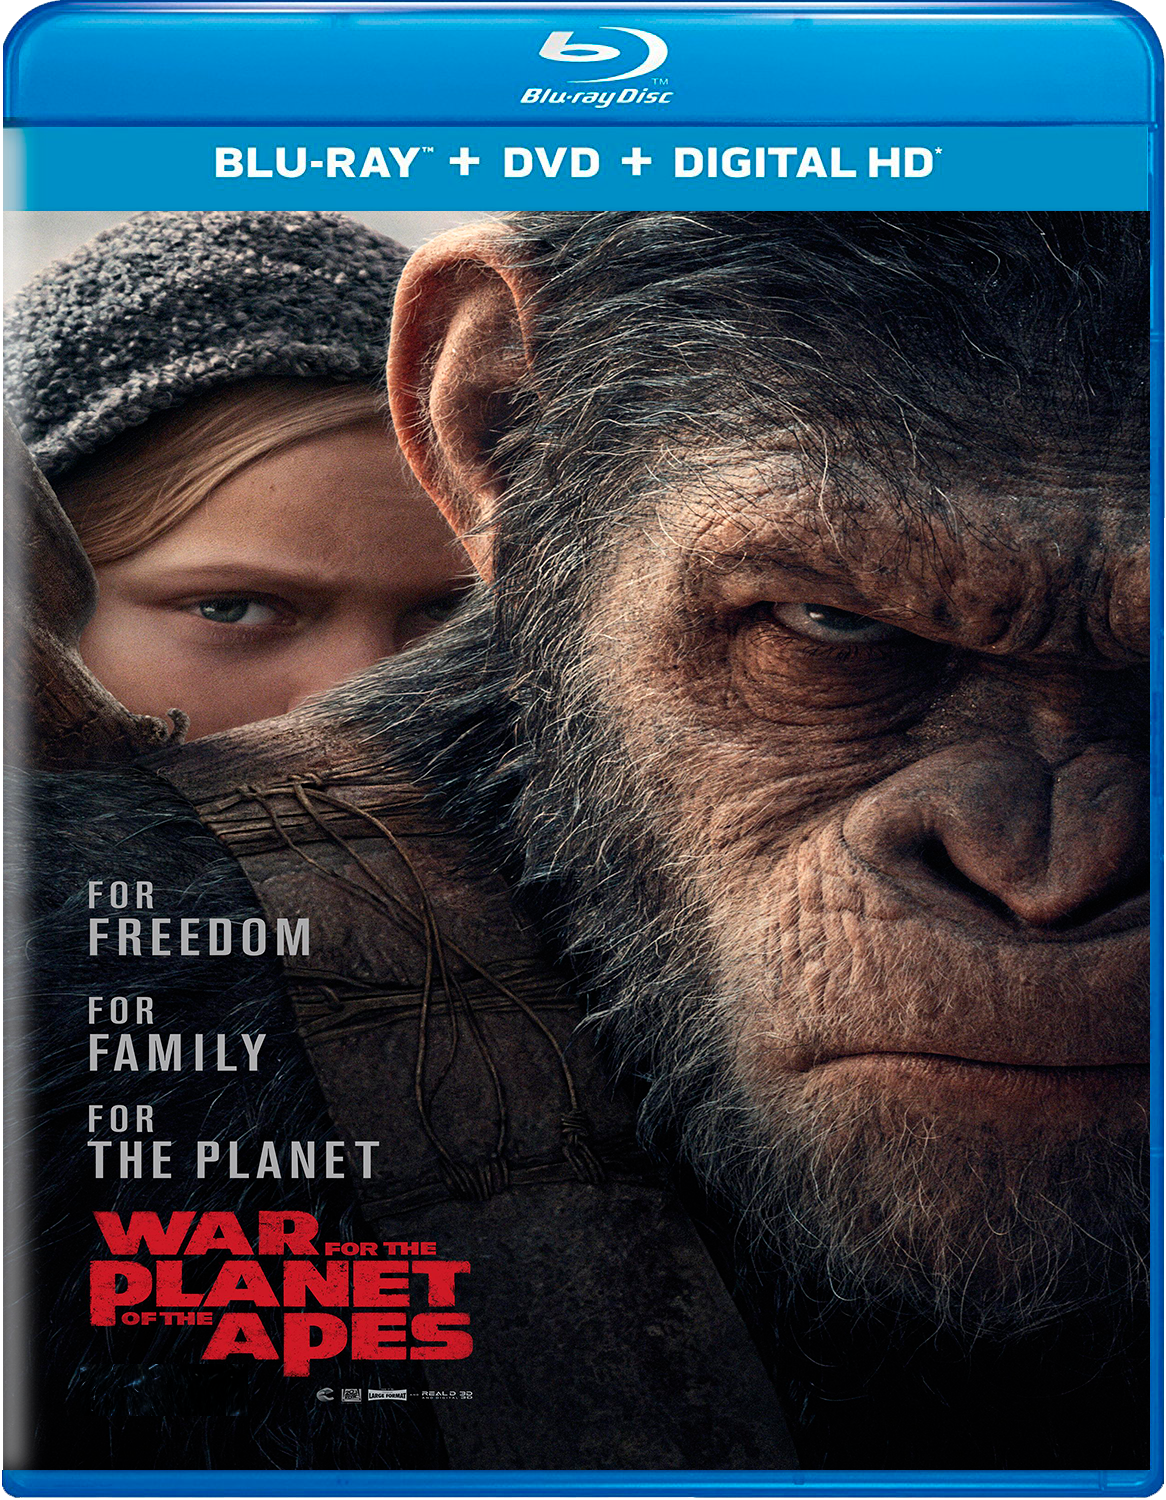 War For The Planet Of The Apes (English) movie torrent download